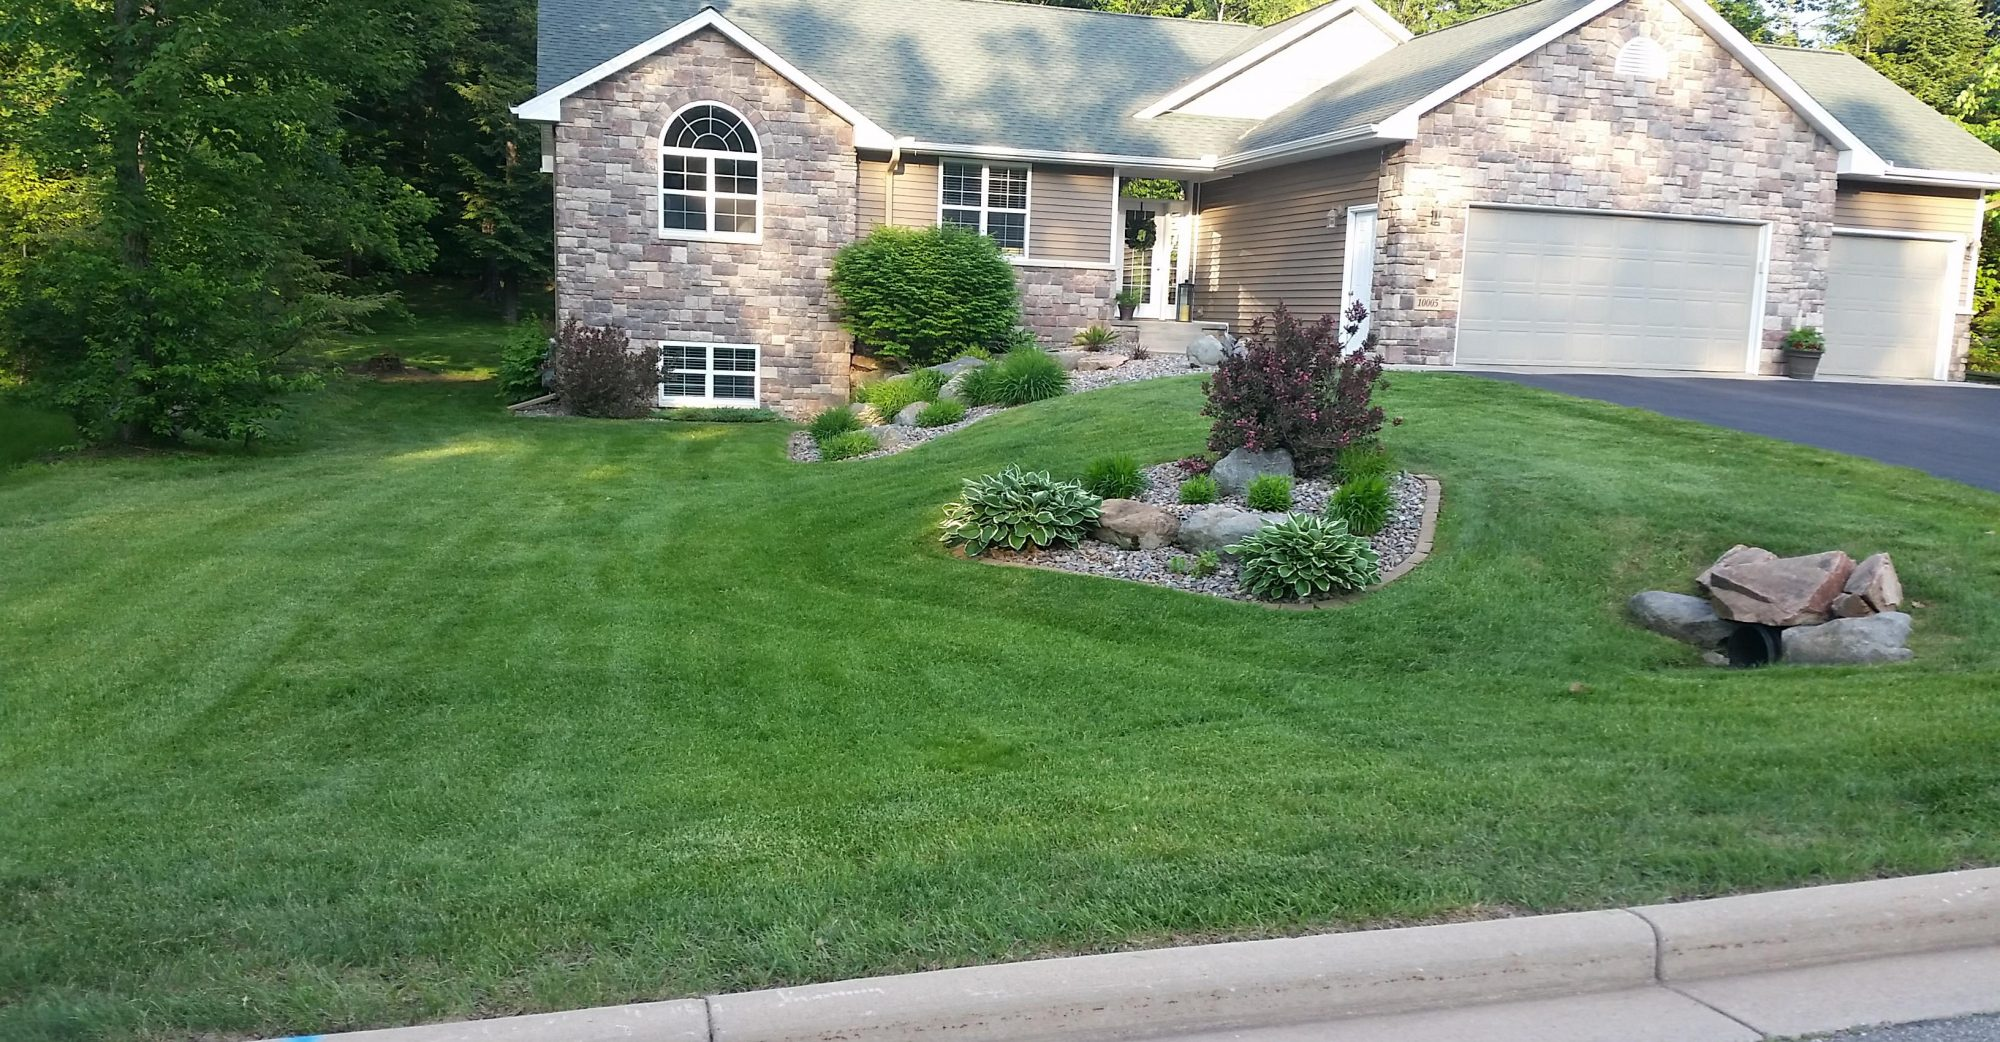 YACH'S LAWN CARE